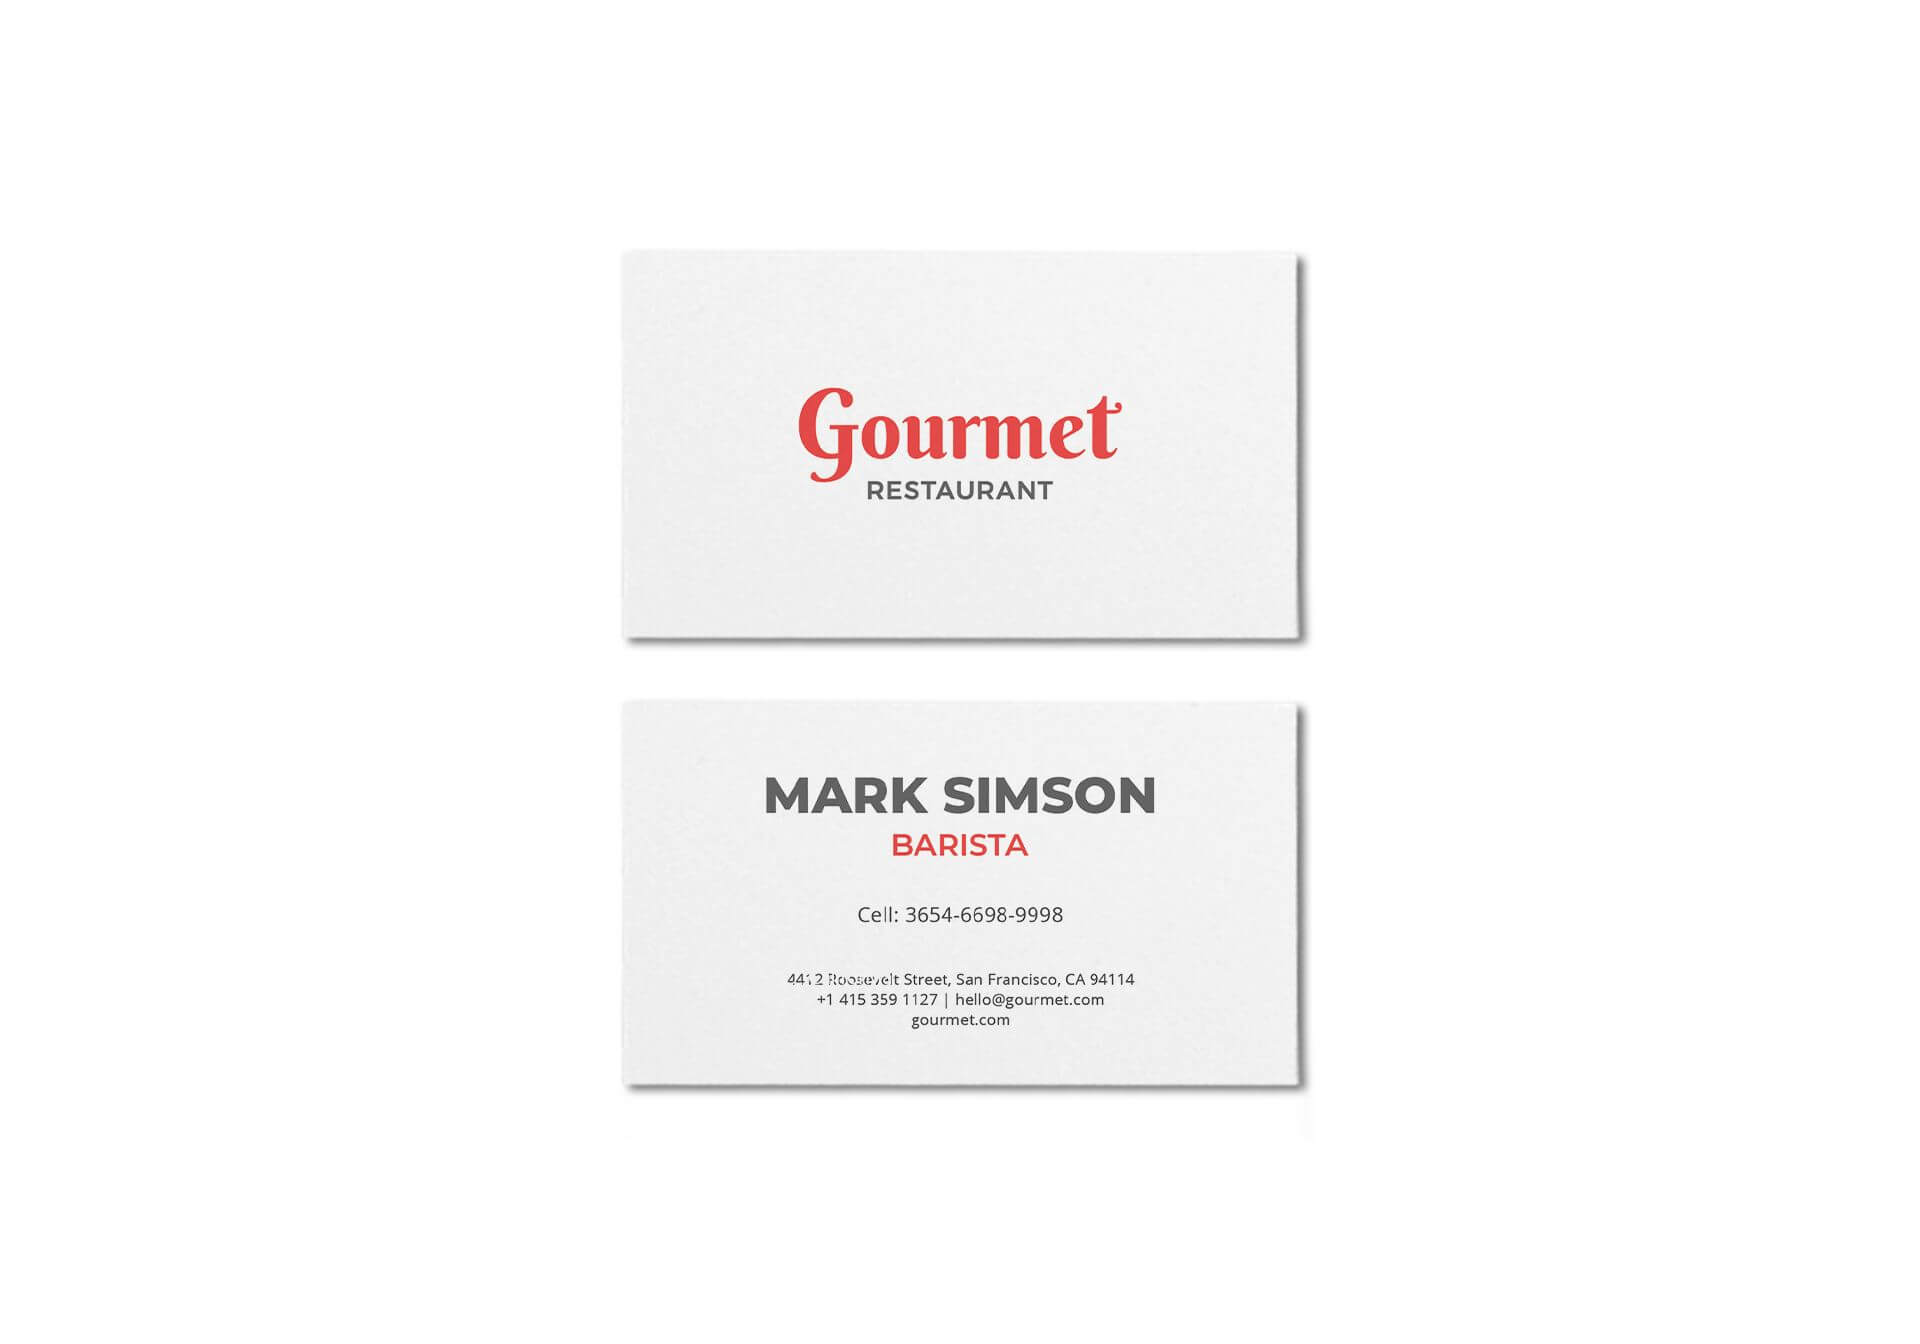 Restaurant Business Card Template In Psd, Word, Publisher in Pages Business Card Template